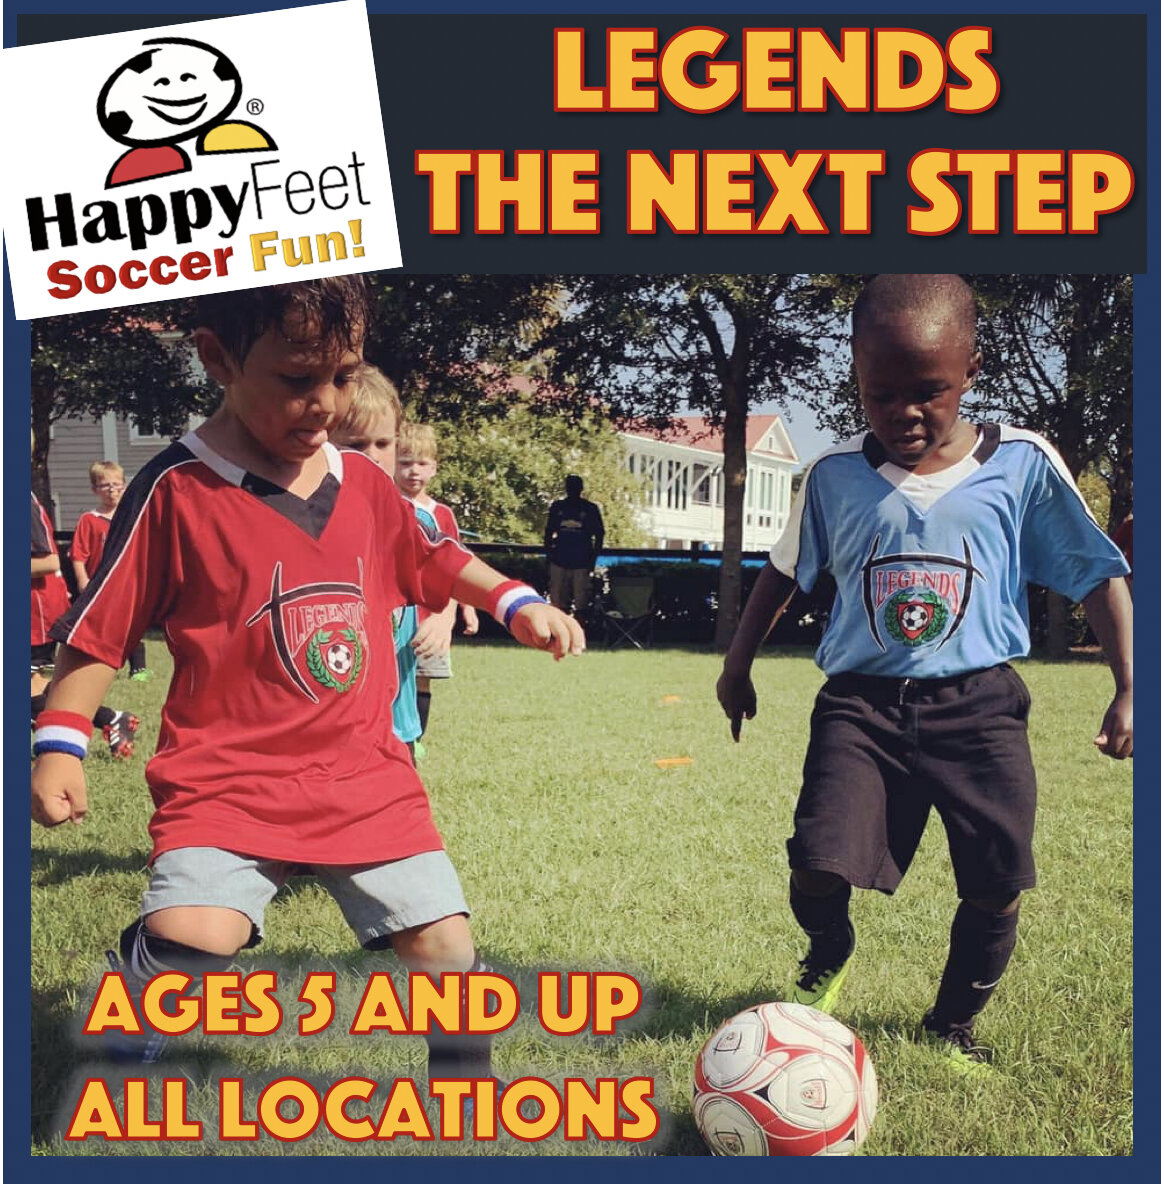 Legends The Next Step- Ages 5 and Up